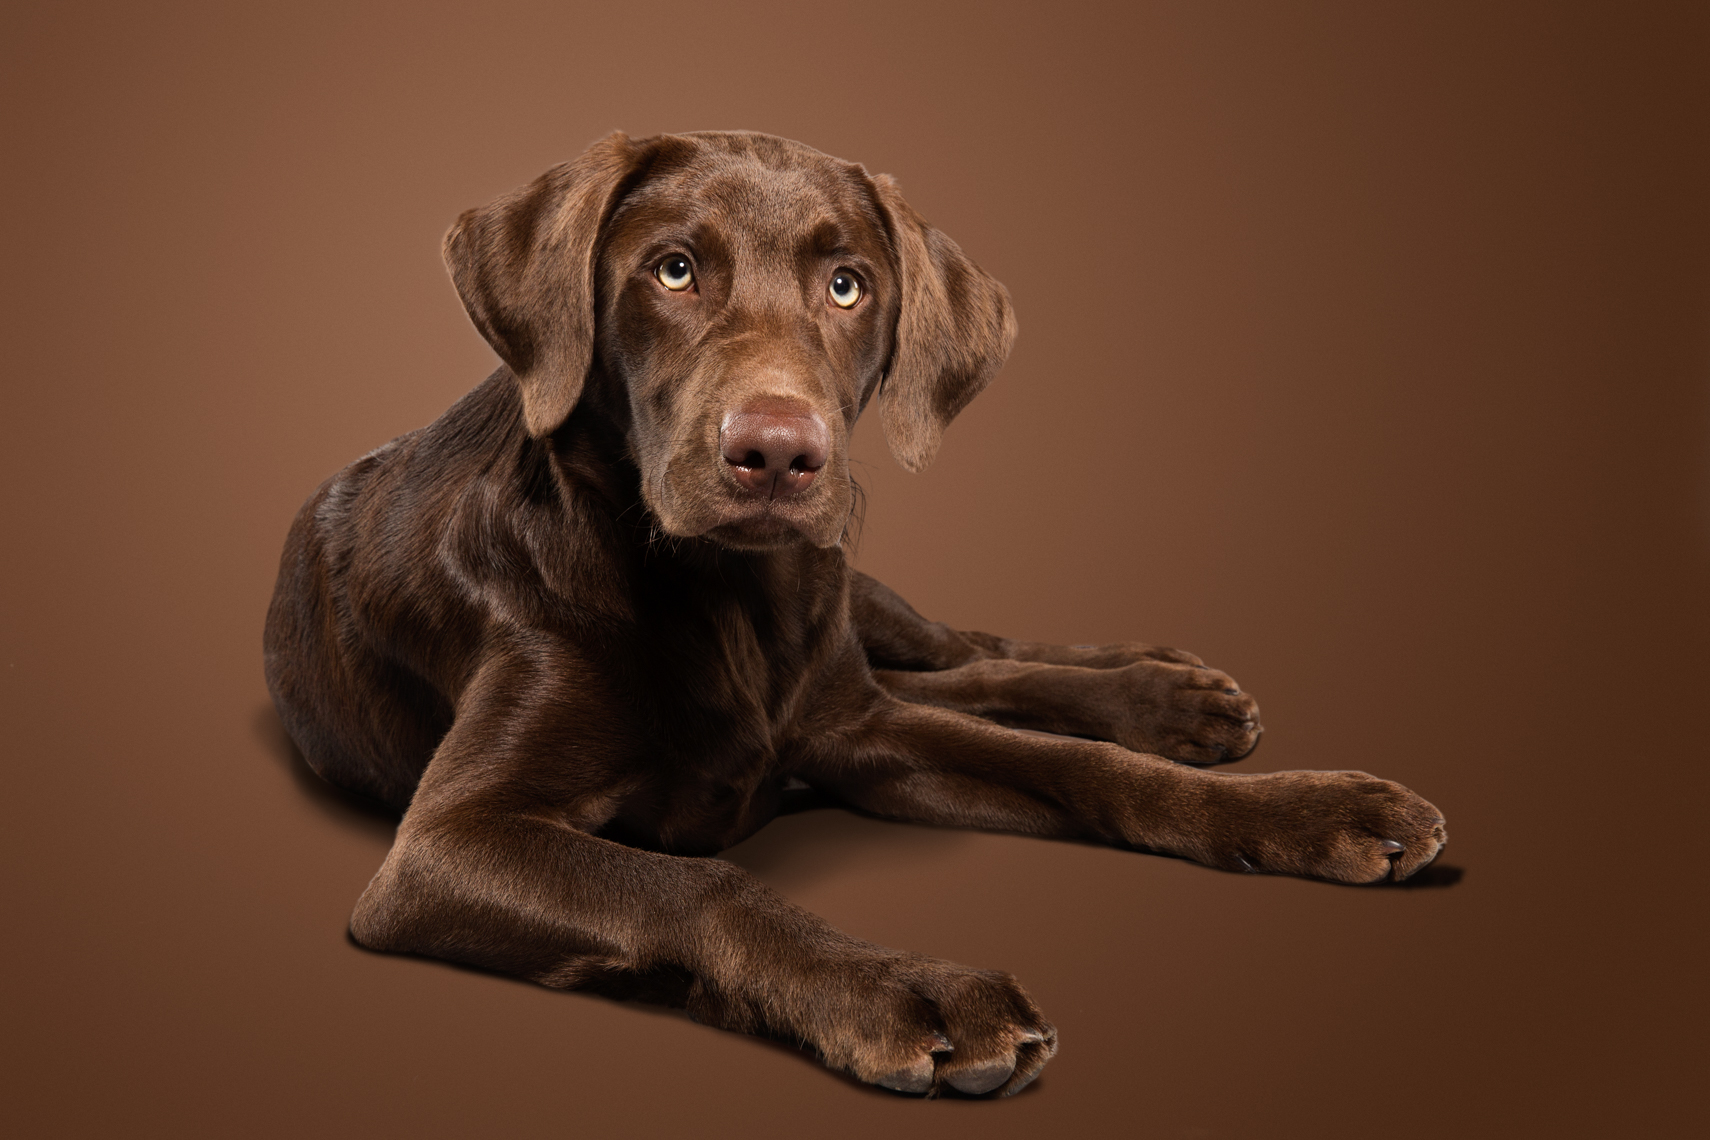 Chocolate lab puppy laying on the ground